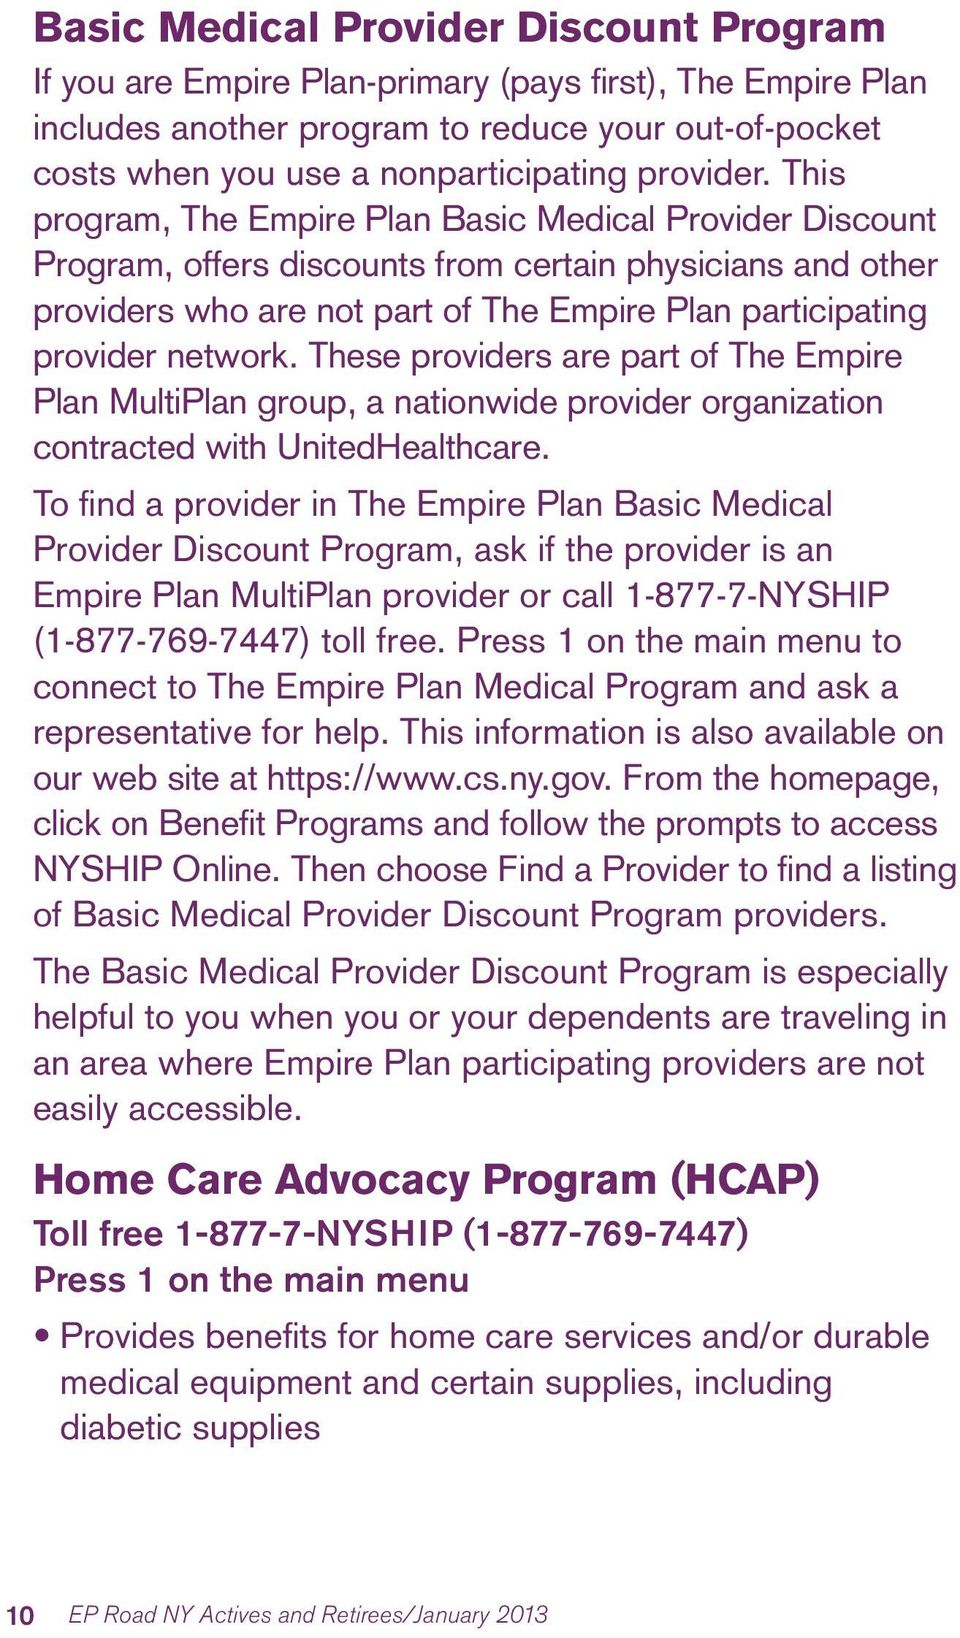 This program, The Empire Plan Basic Medical Provider Discount Program, offers discounts from certain physicians and other providers who are not part of The Empire Plan participating provider network.